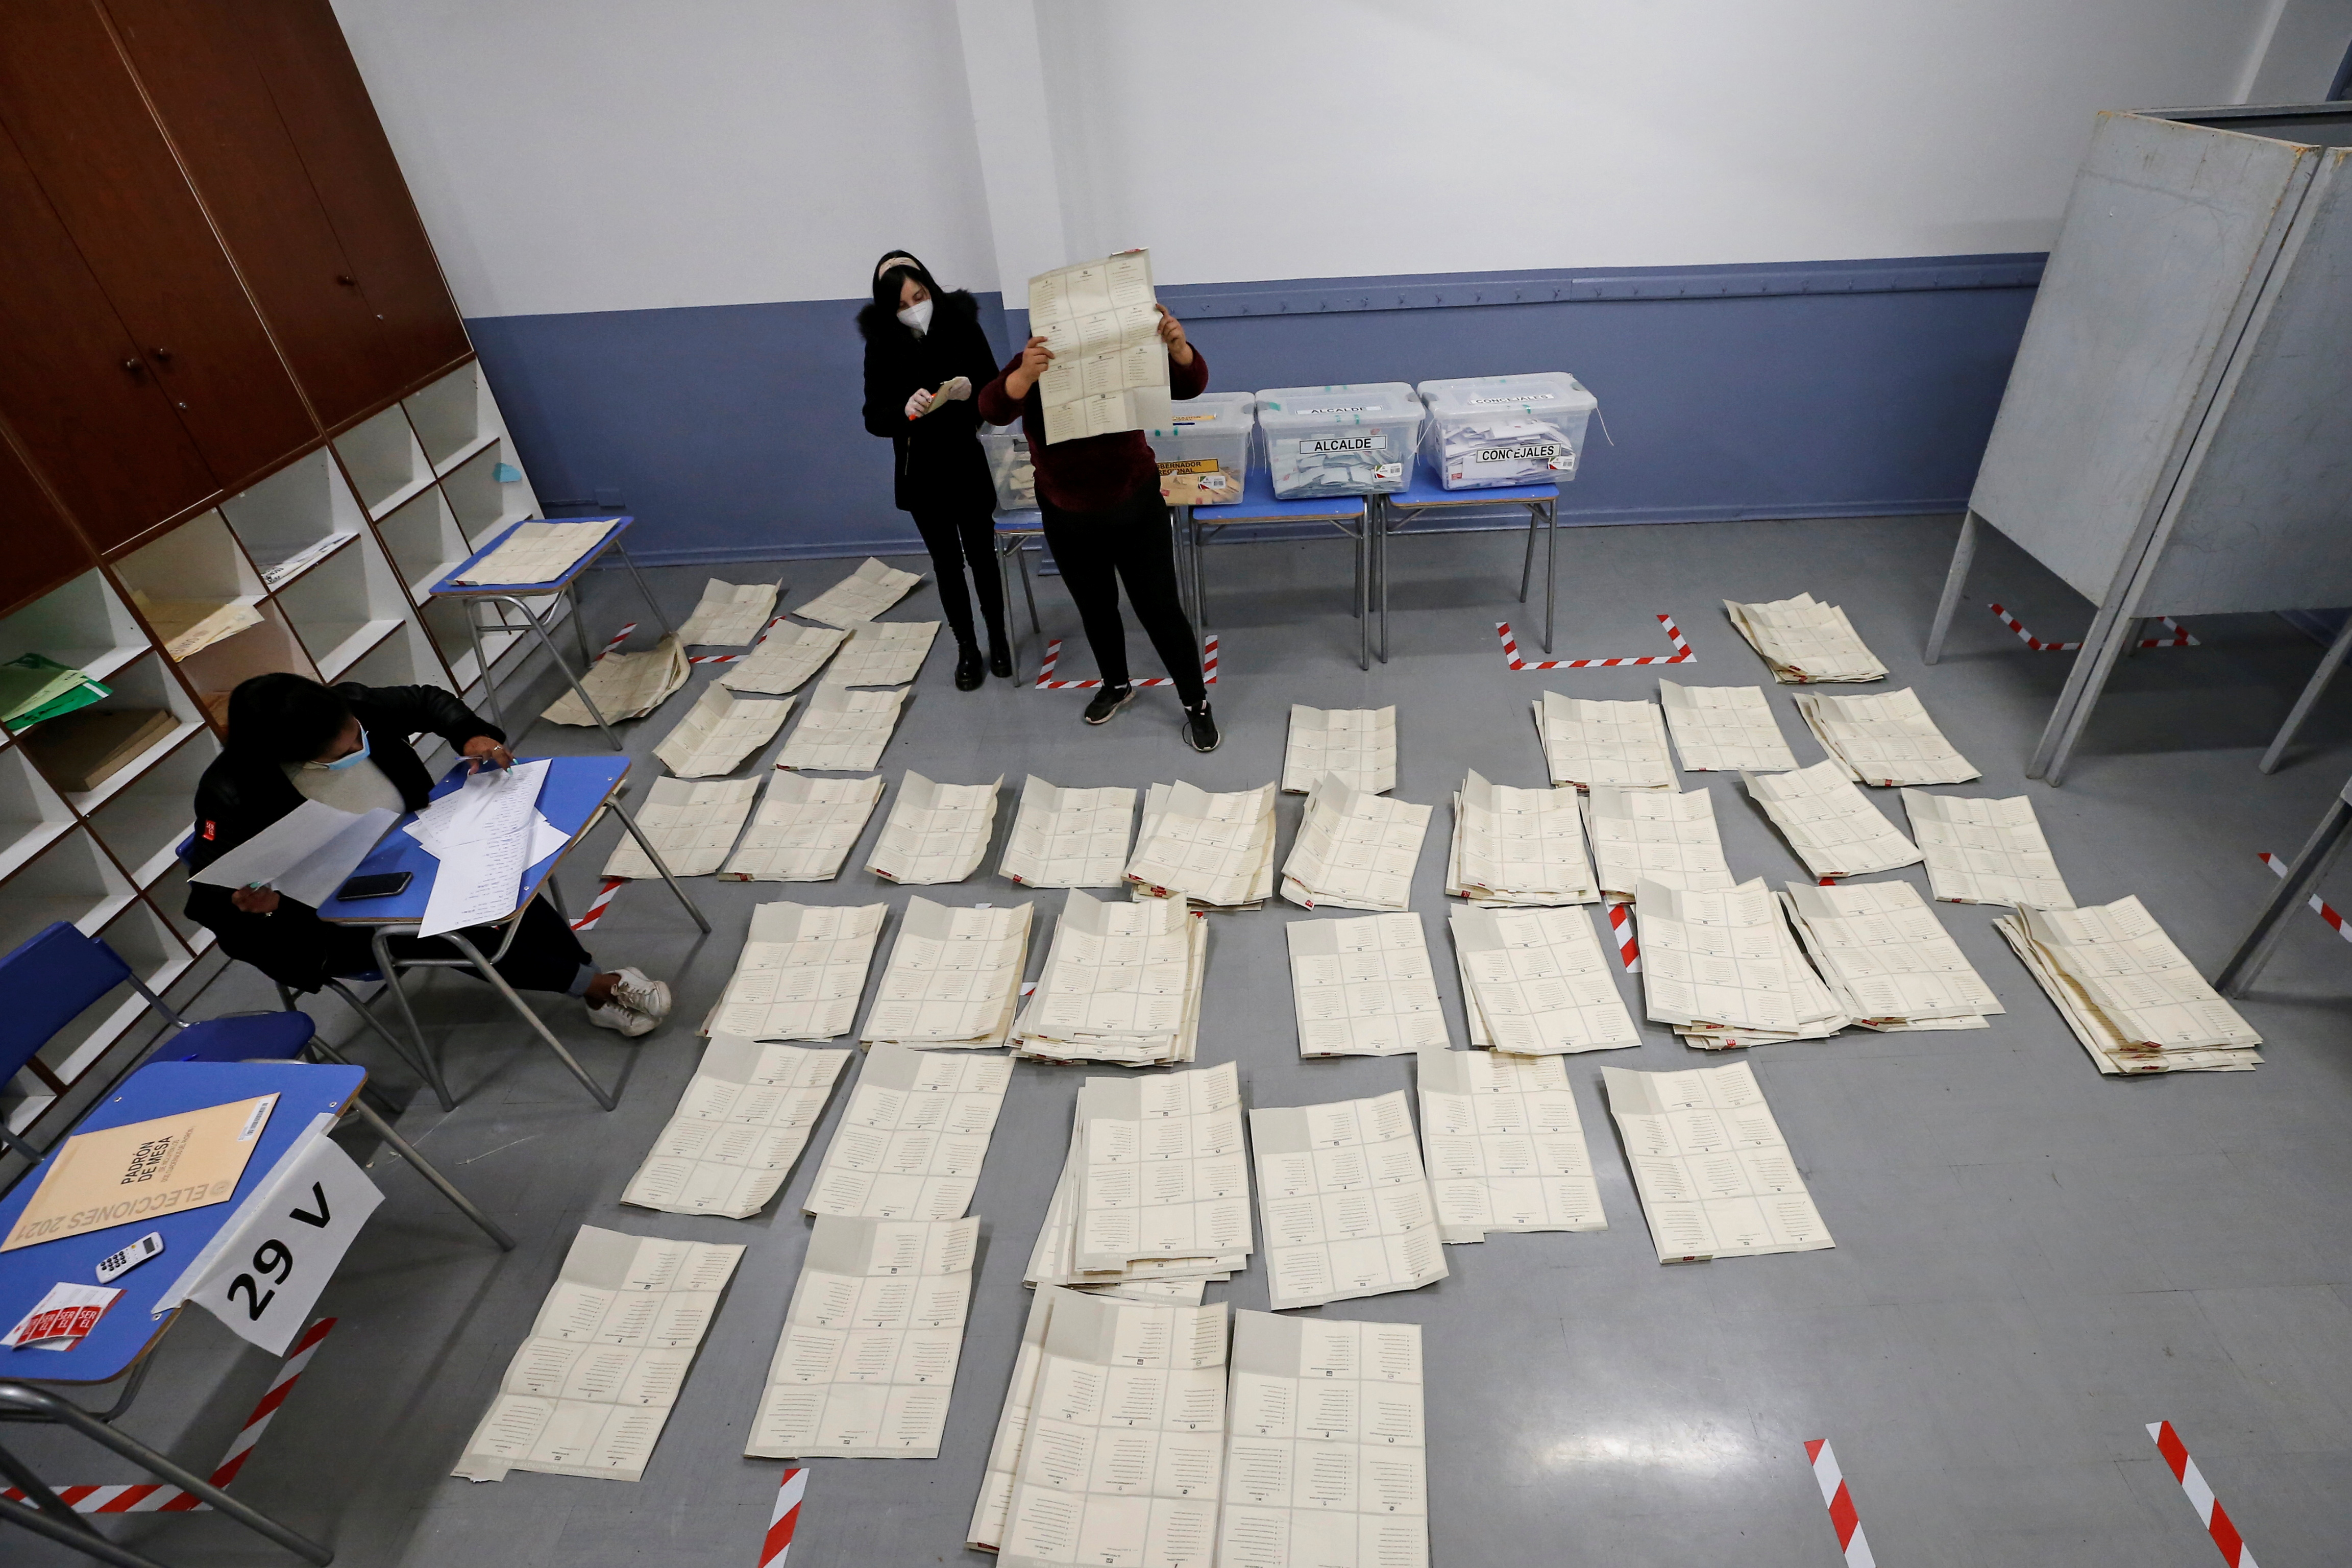 Poll workers sort through and count the votes after polls closed during the elections for governors, mayors, councillors and constitutional assembly members to draft a new constitution to replace Chile's charter, in Valparaiso, Chile, May 16, 2021. REUTERS/Rodrigo Garrido